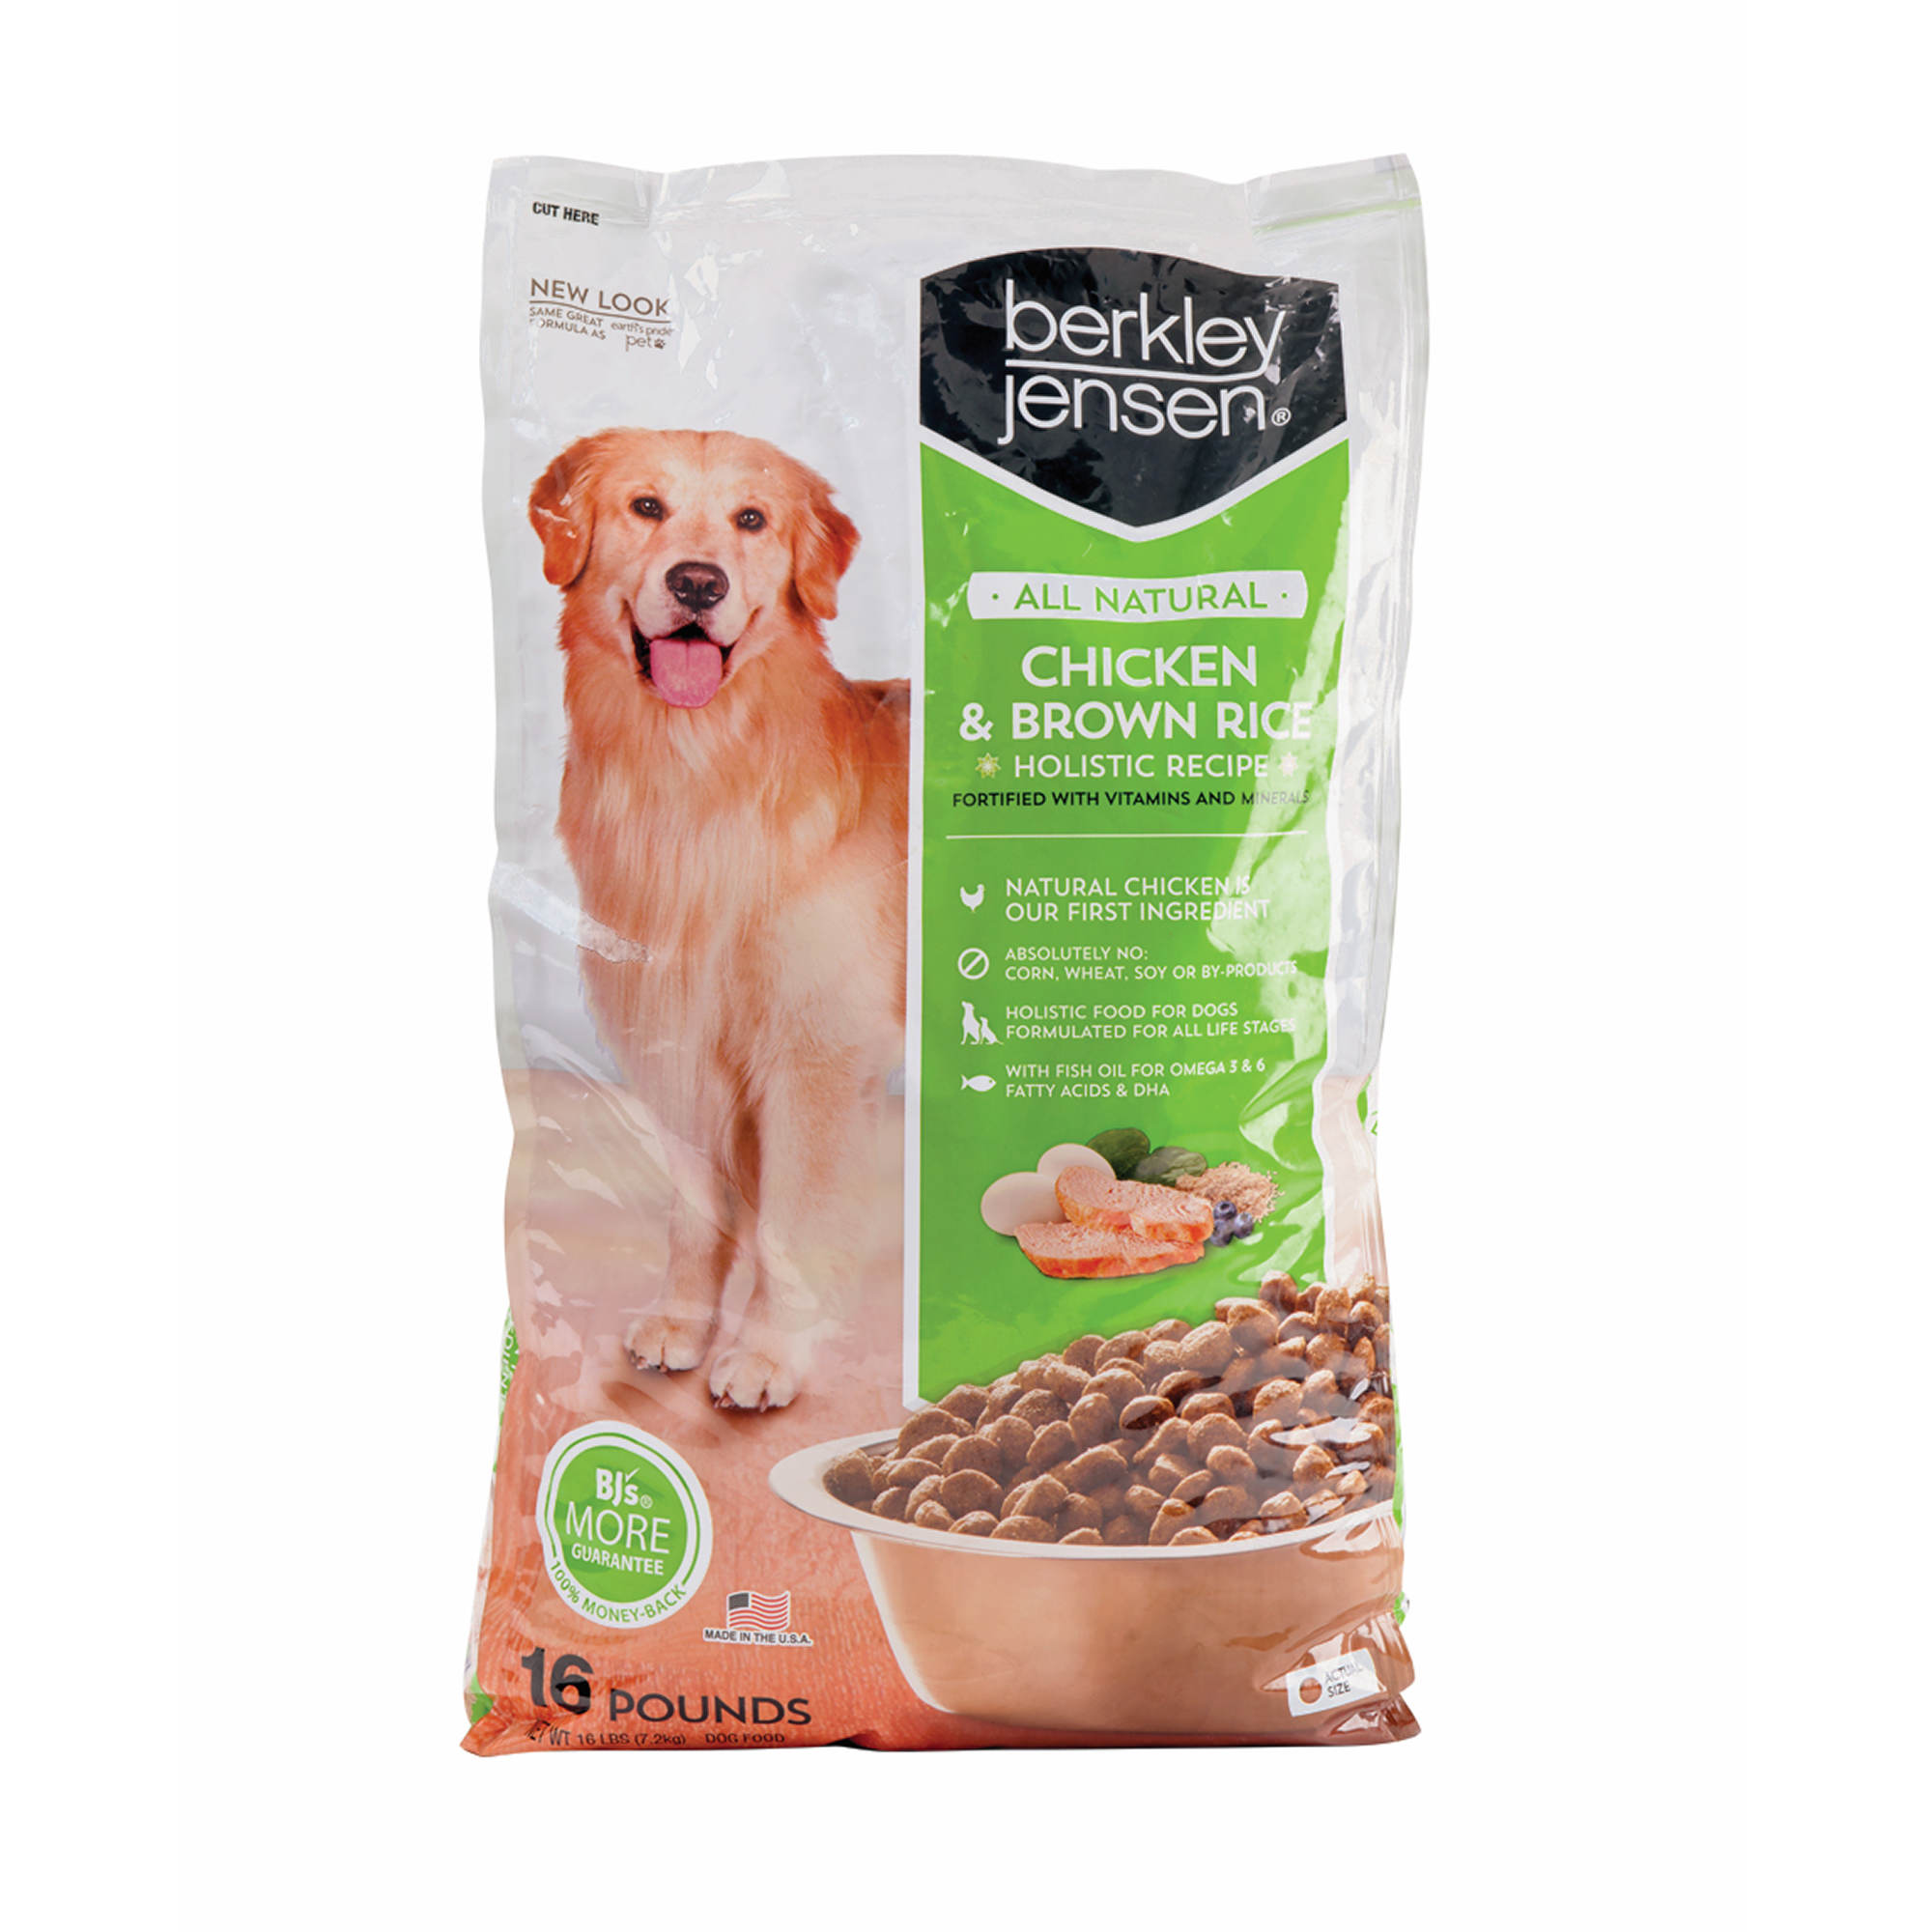 Berkley jensen all natural chicken and brown rice holistic recipe 0 undefined 1 undefined forumfinder Choice Image